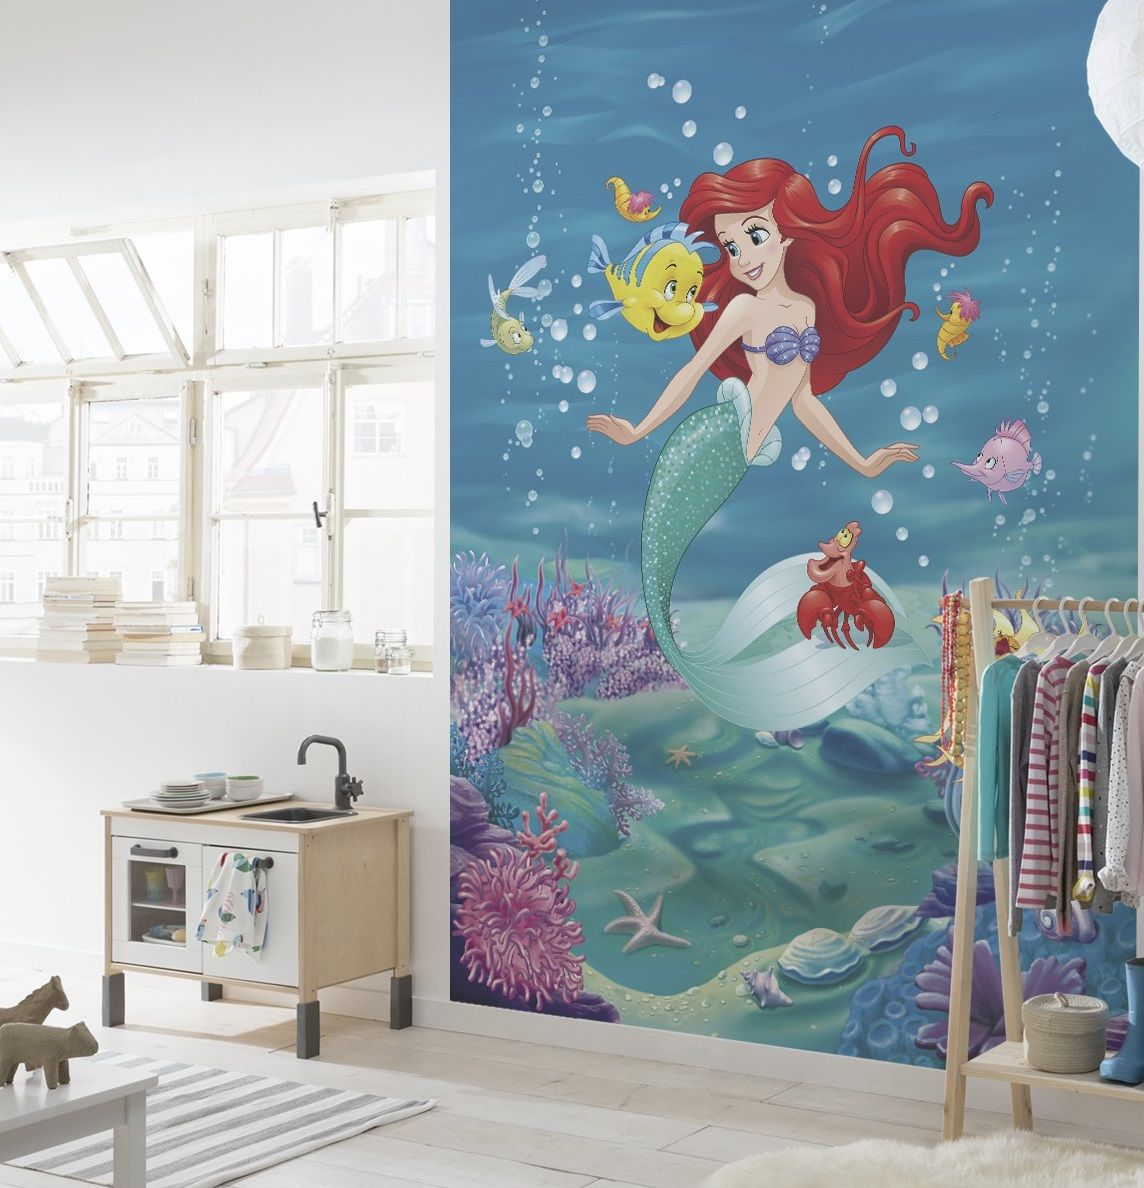 Details About Wall Mural Wallpaper Disney Mermaid 254x184cm Large Photo  Decor For Kids Room